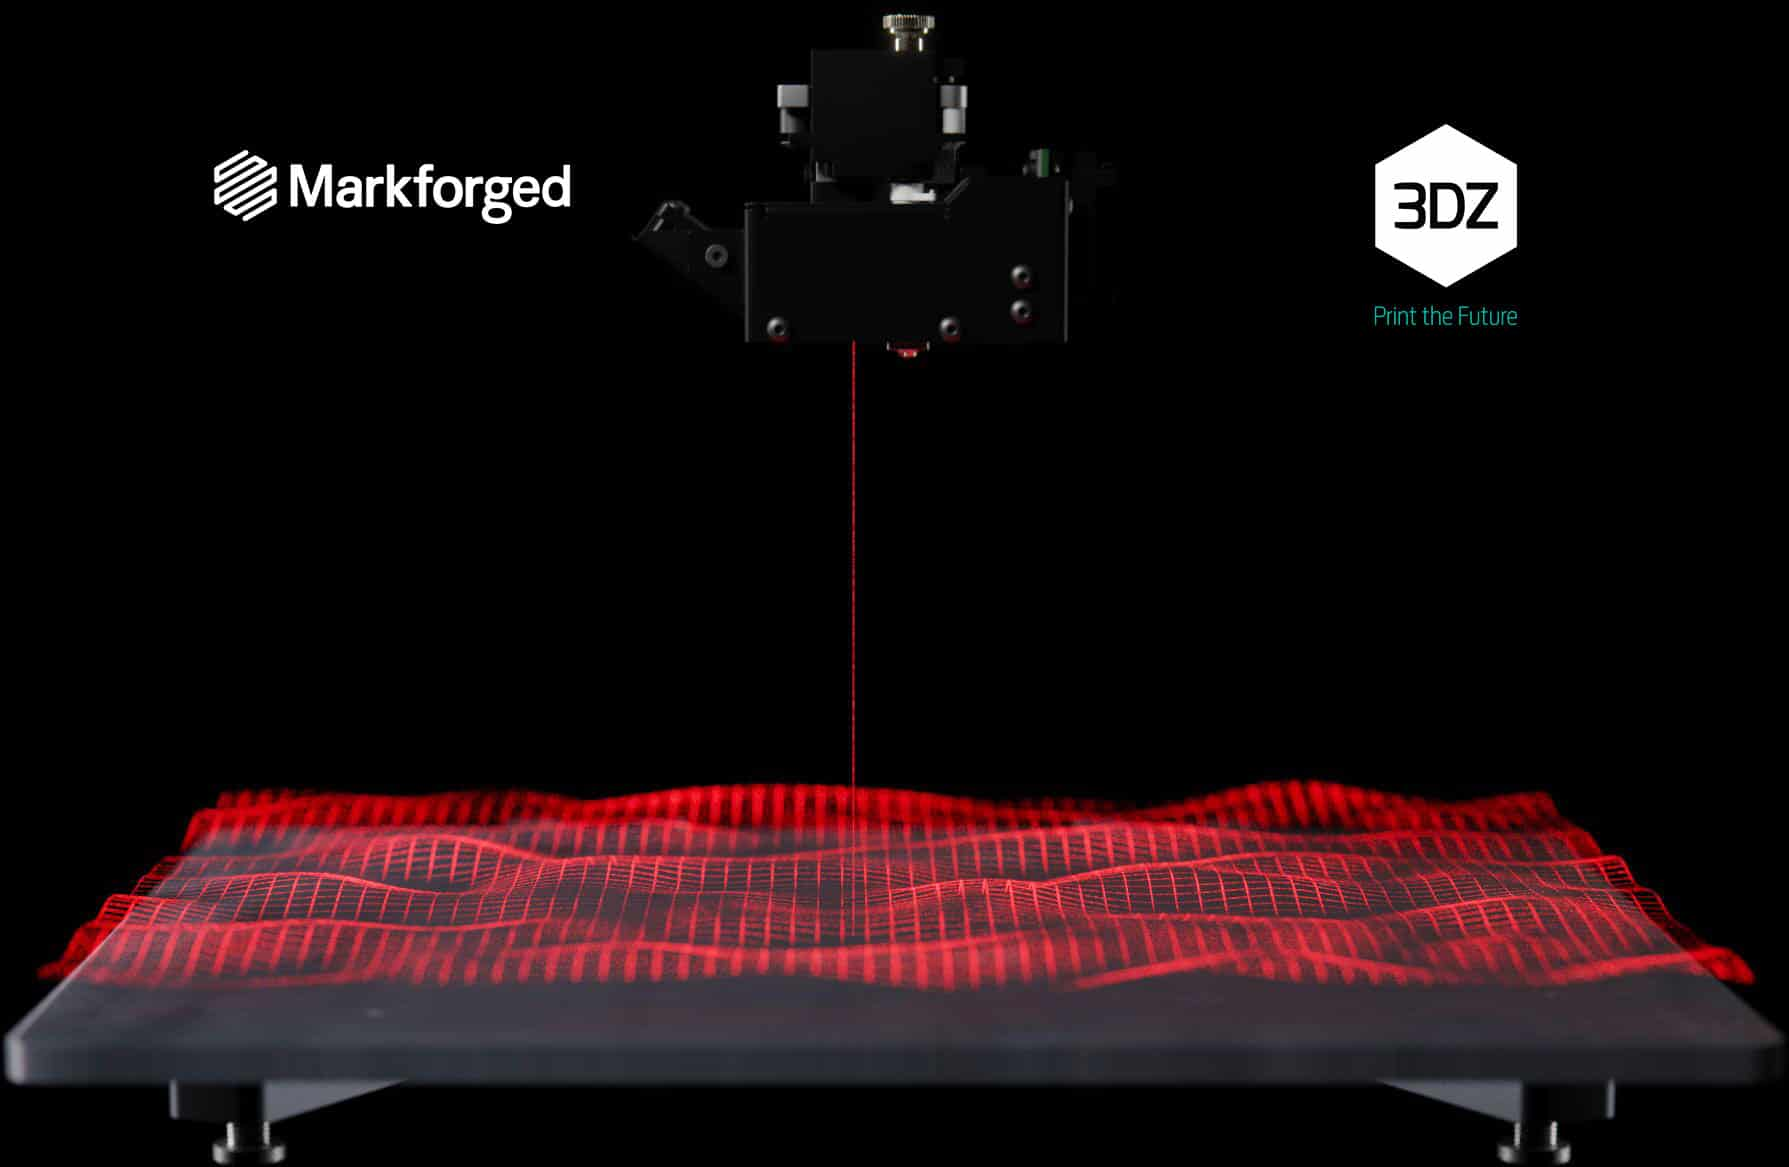 Markforged: the mechanical revolution